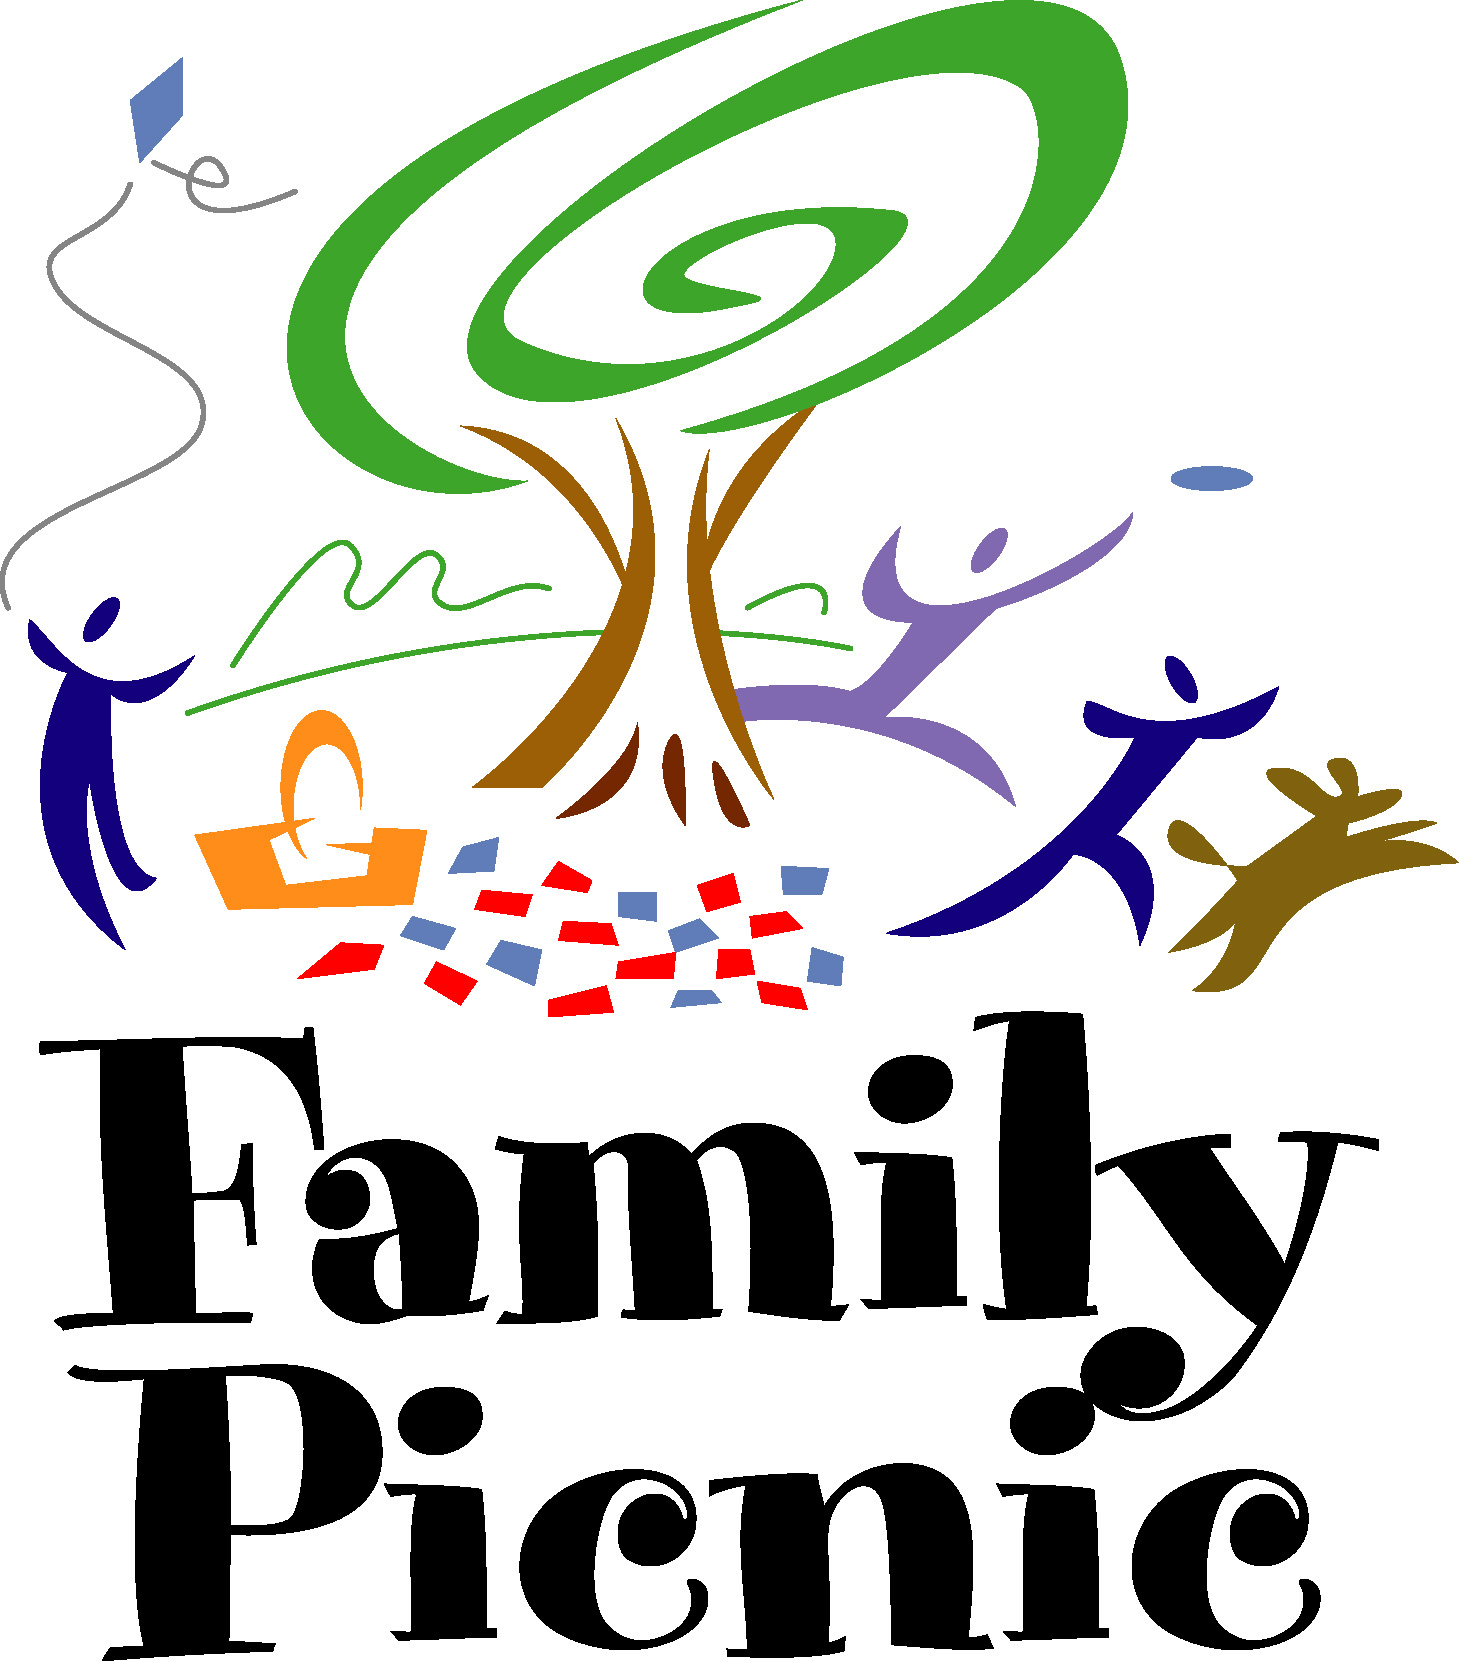 Picnic border clipart free clipart images 2